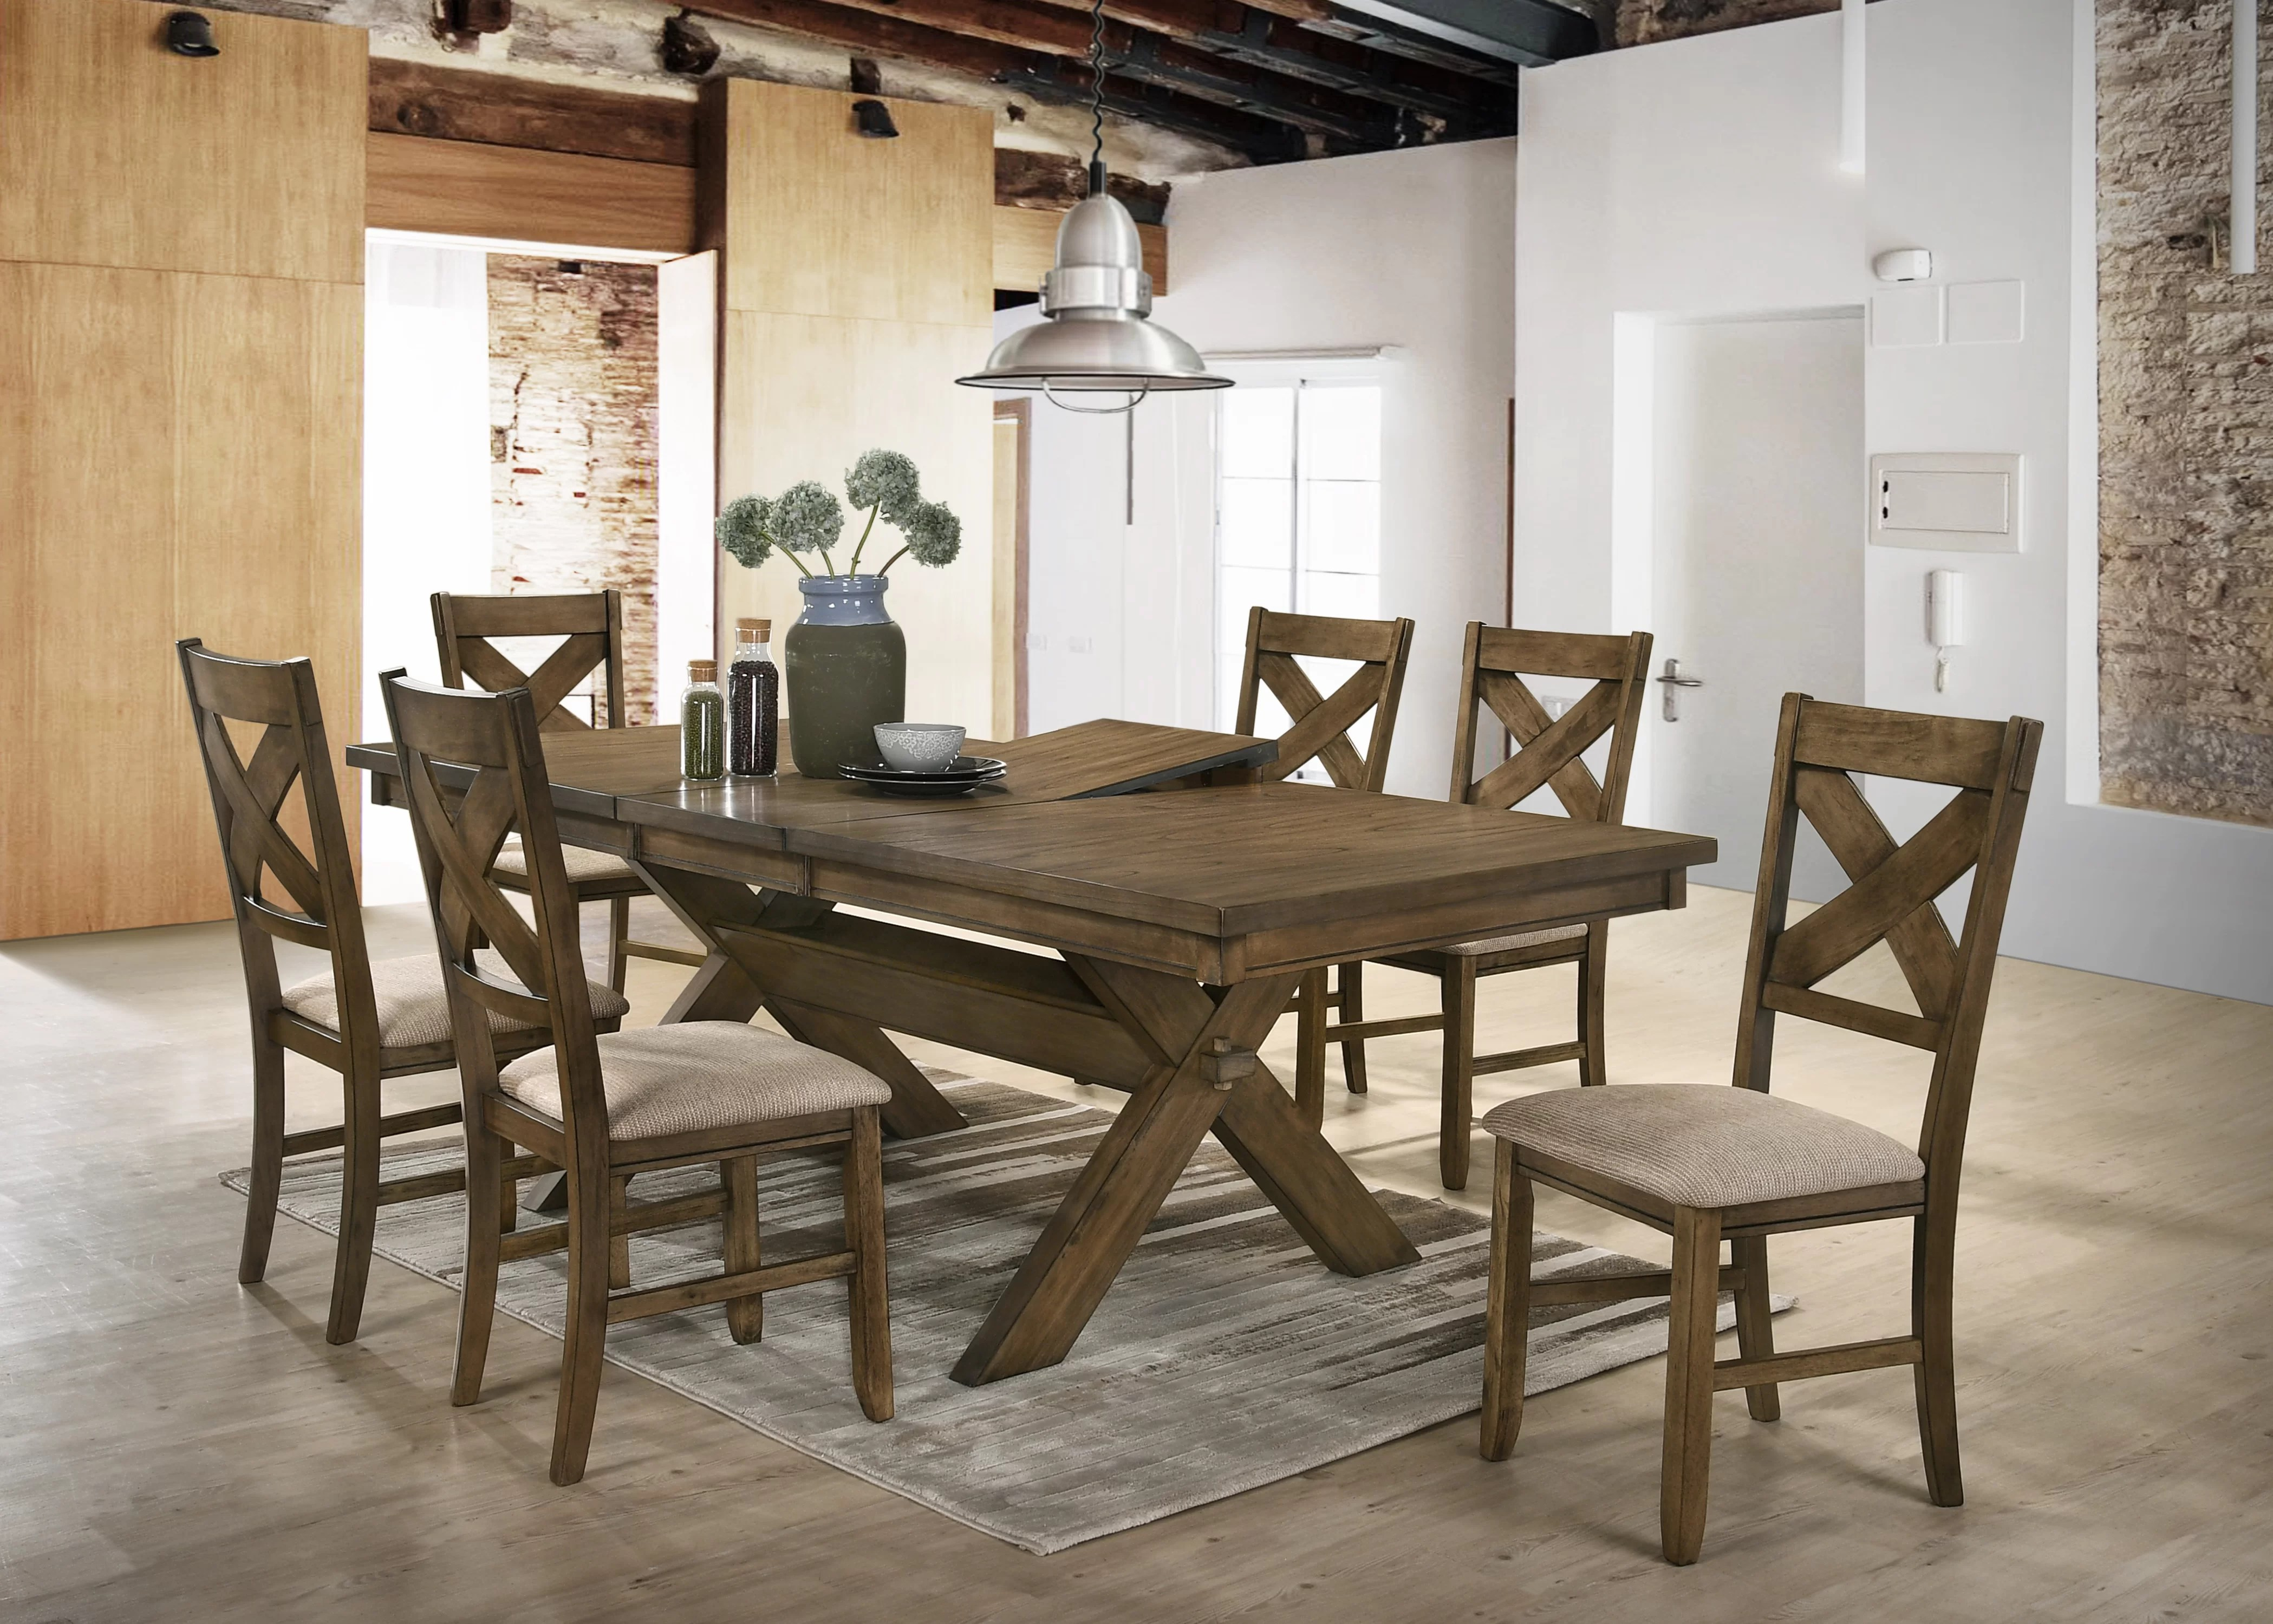 Dining Area Poe 7 Piece Extendable Dining Set